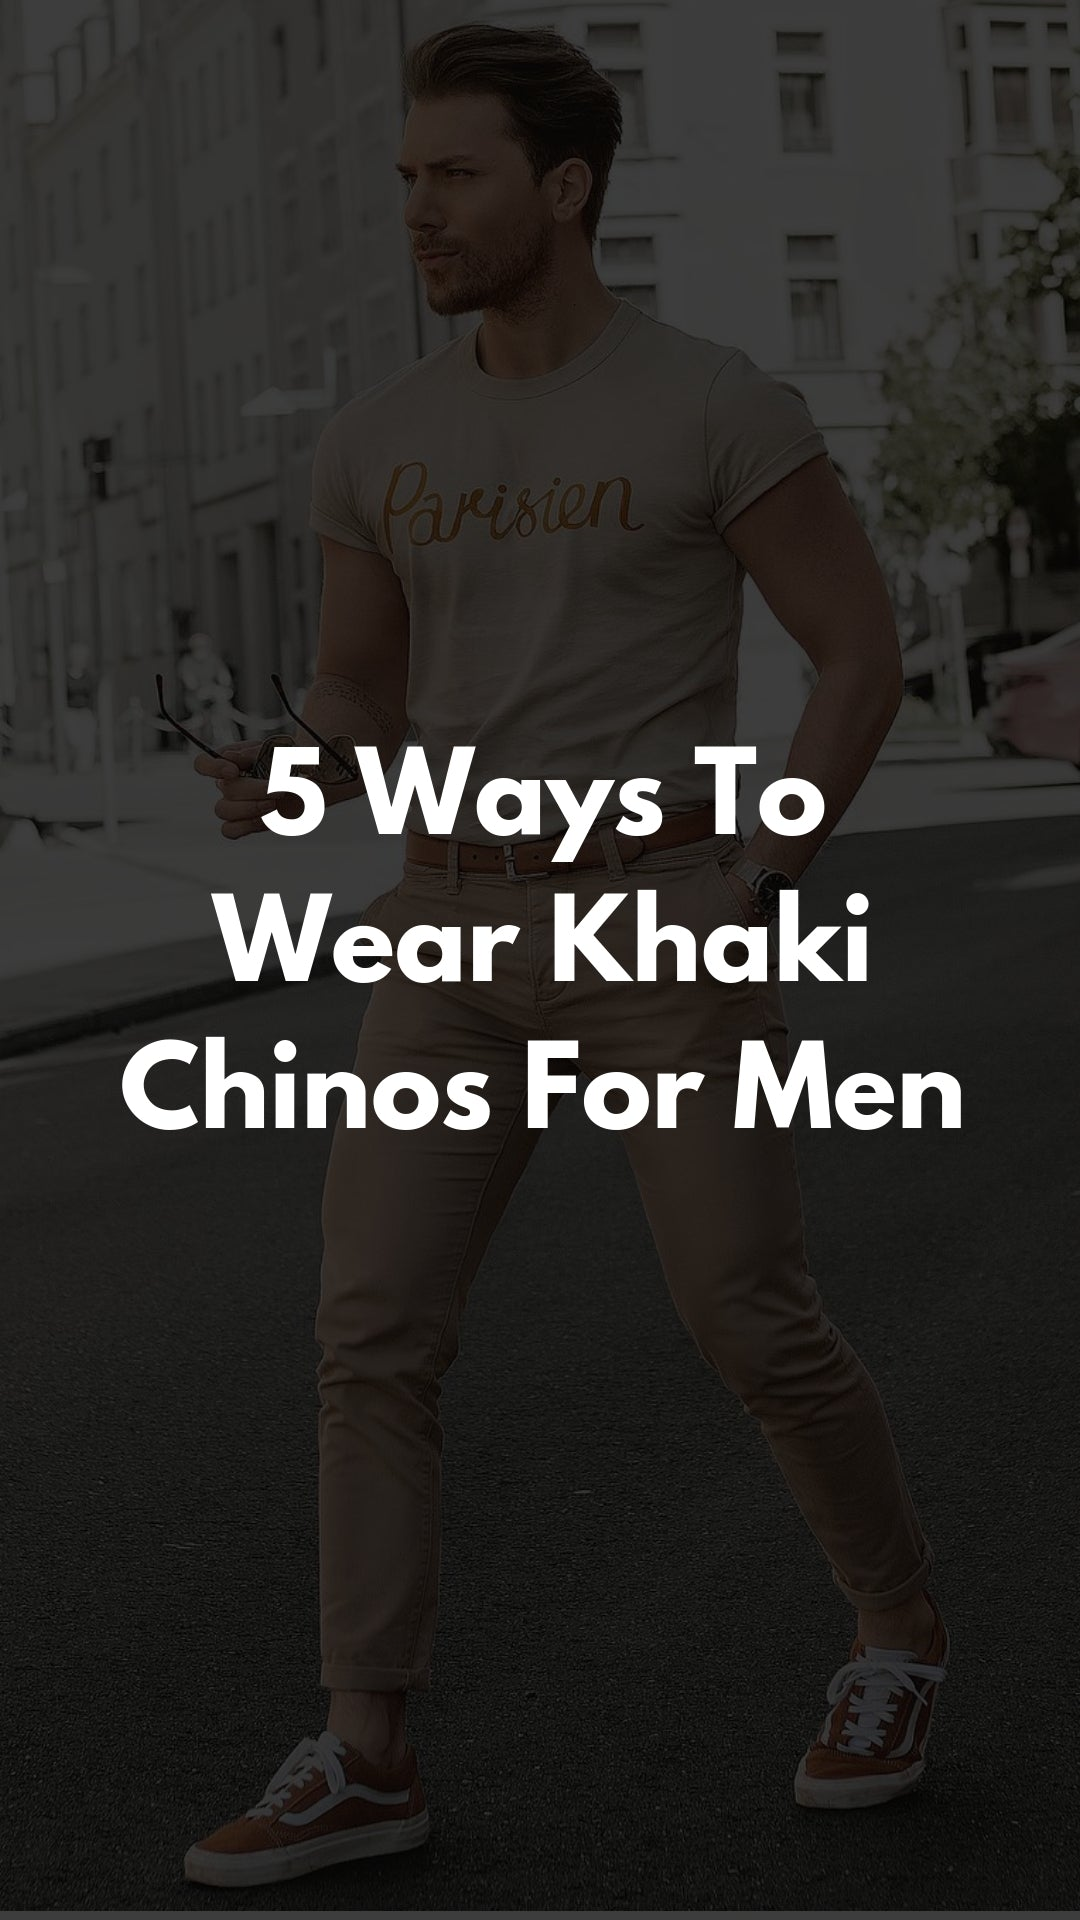 5 Khaki Chinos Outfits For Men #khaki #chinos #outfits #mensfashion #streetstyle